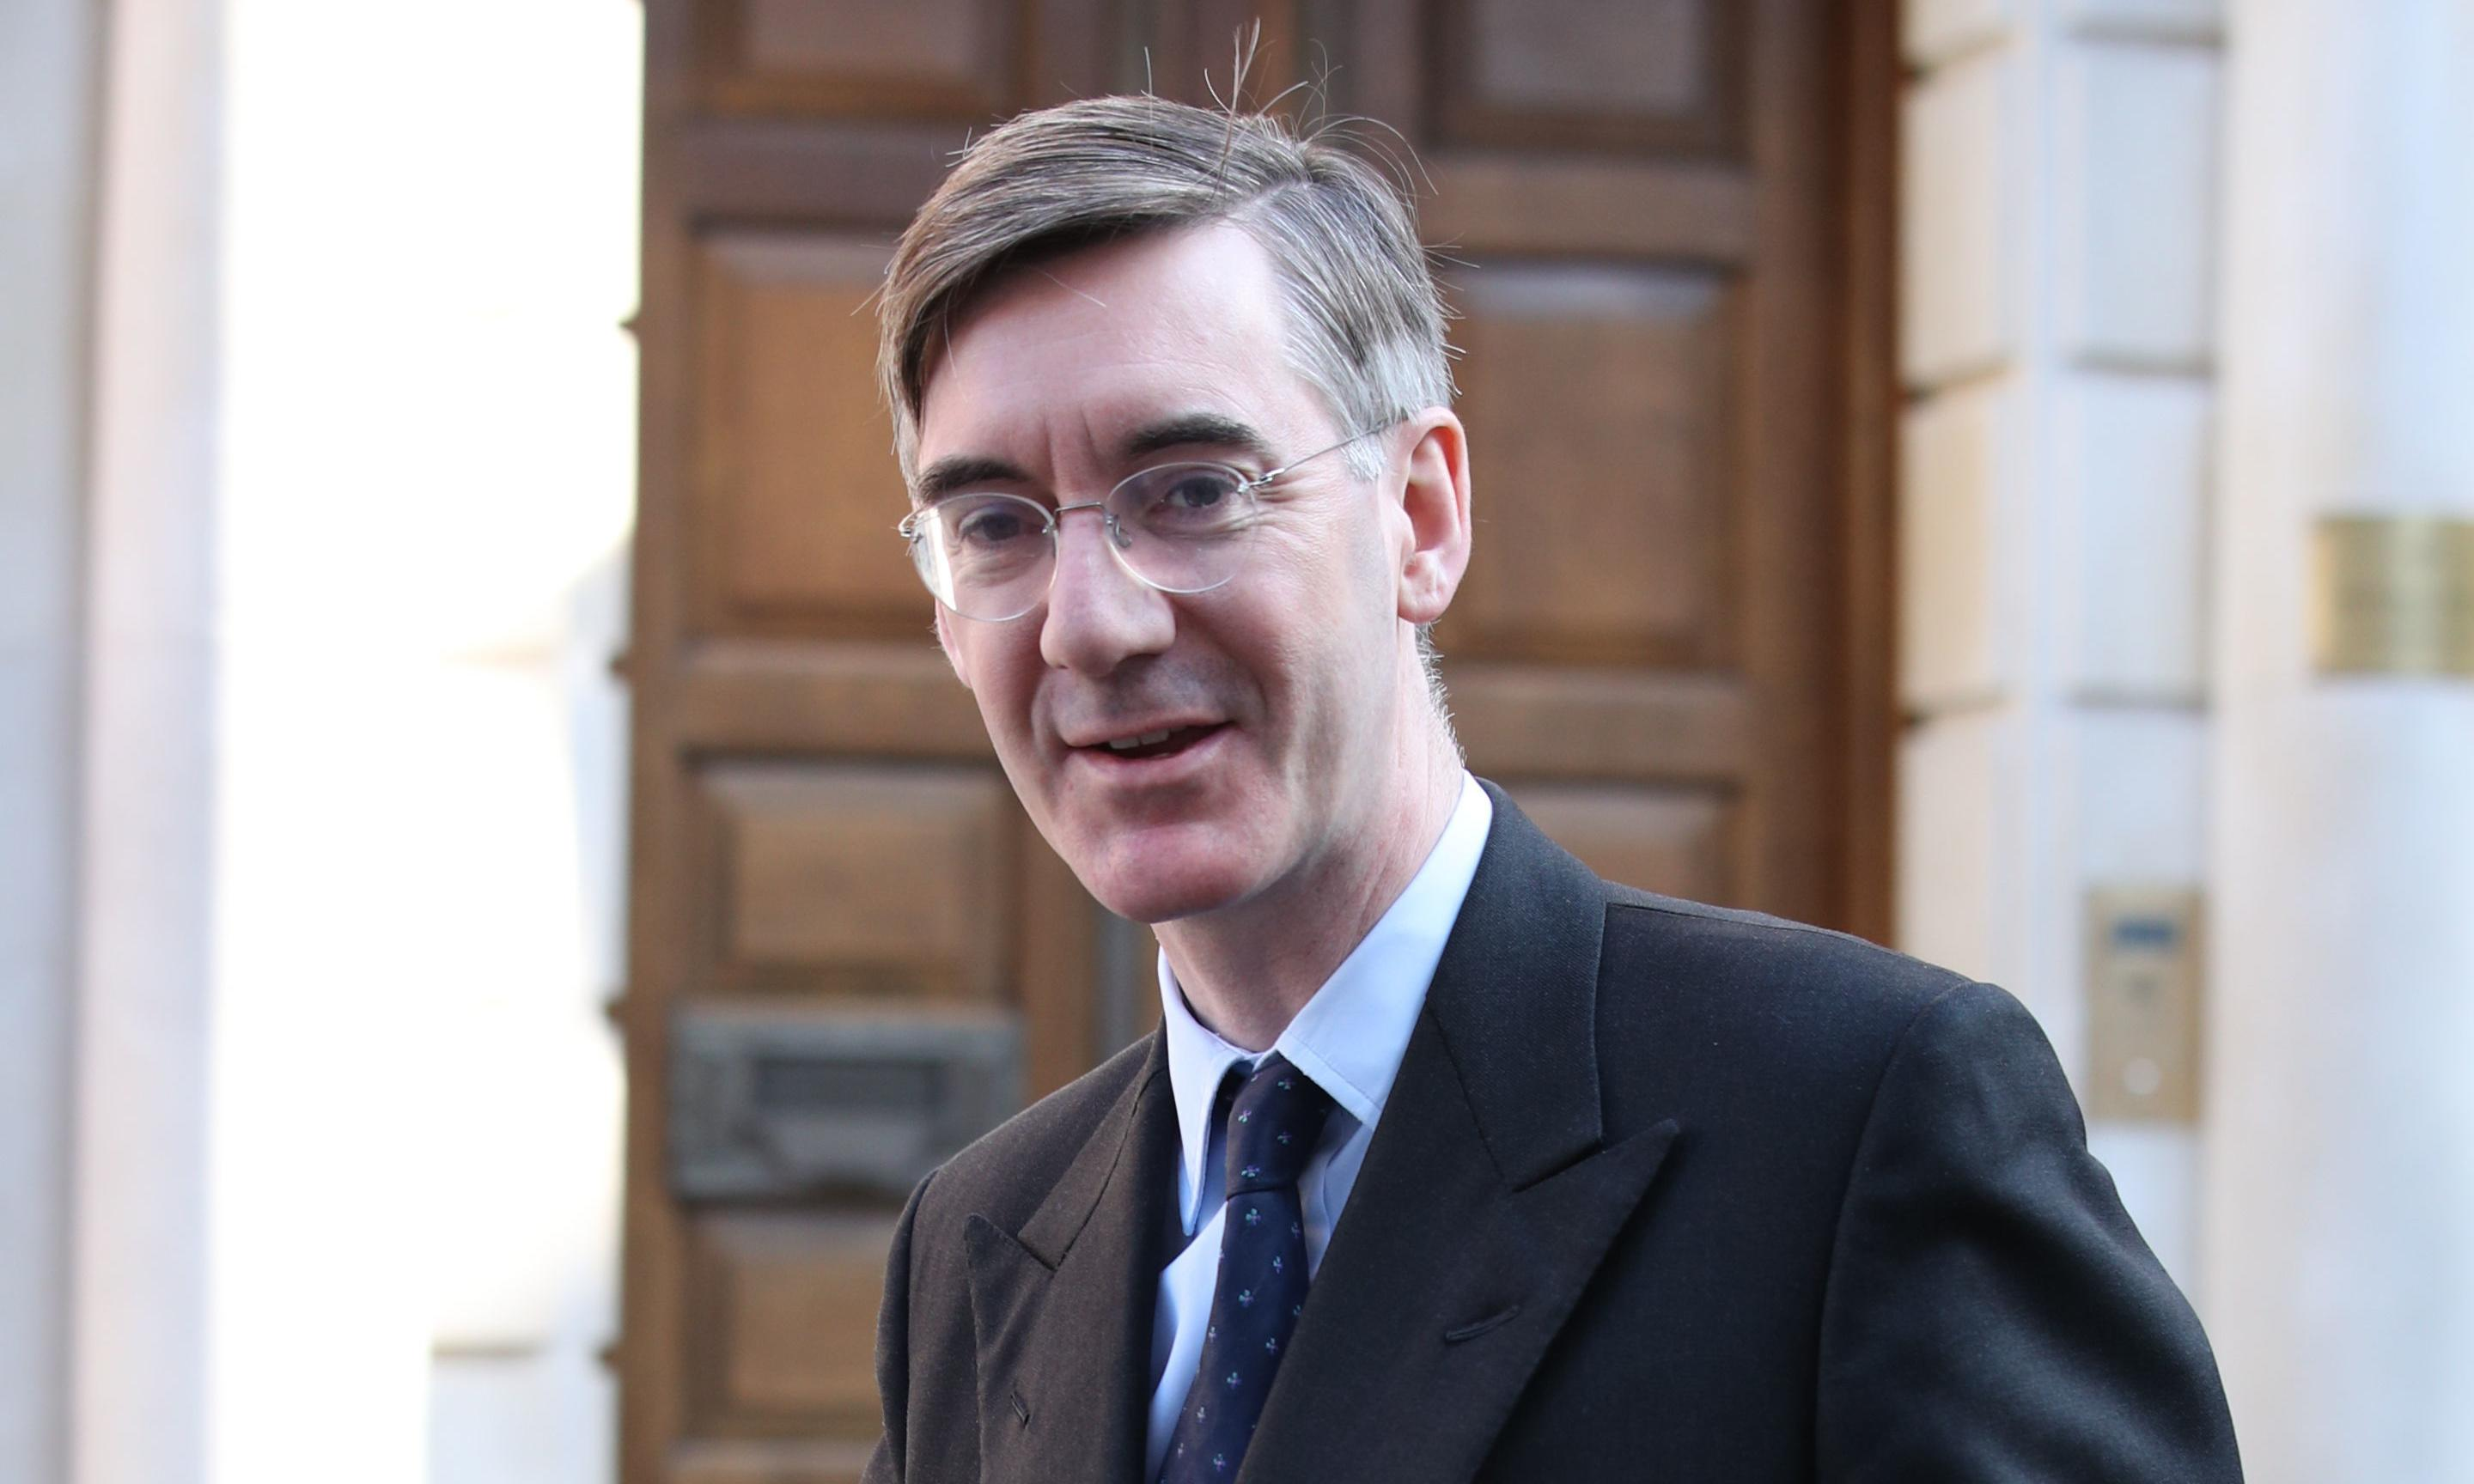 'Staggeringly silly': critics tear apart Jacob Rees-Mogg's new book